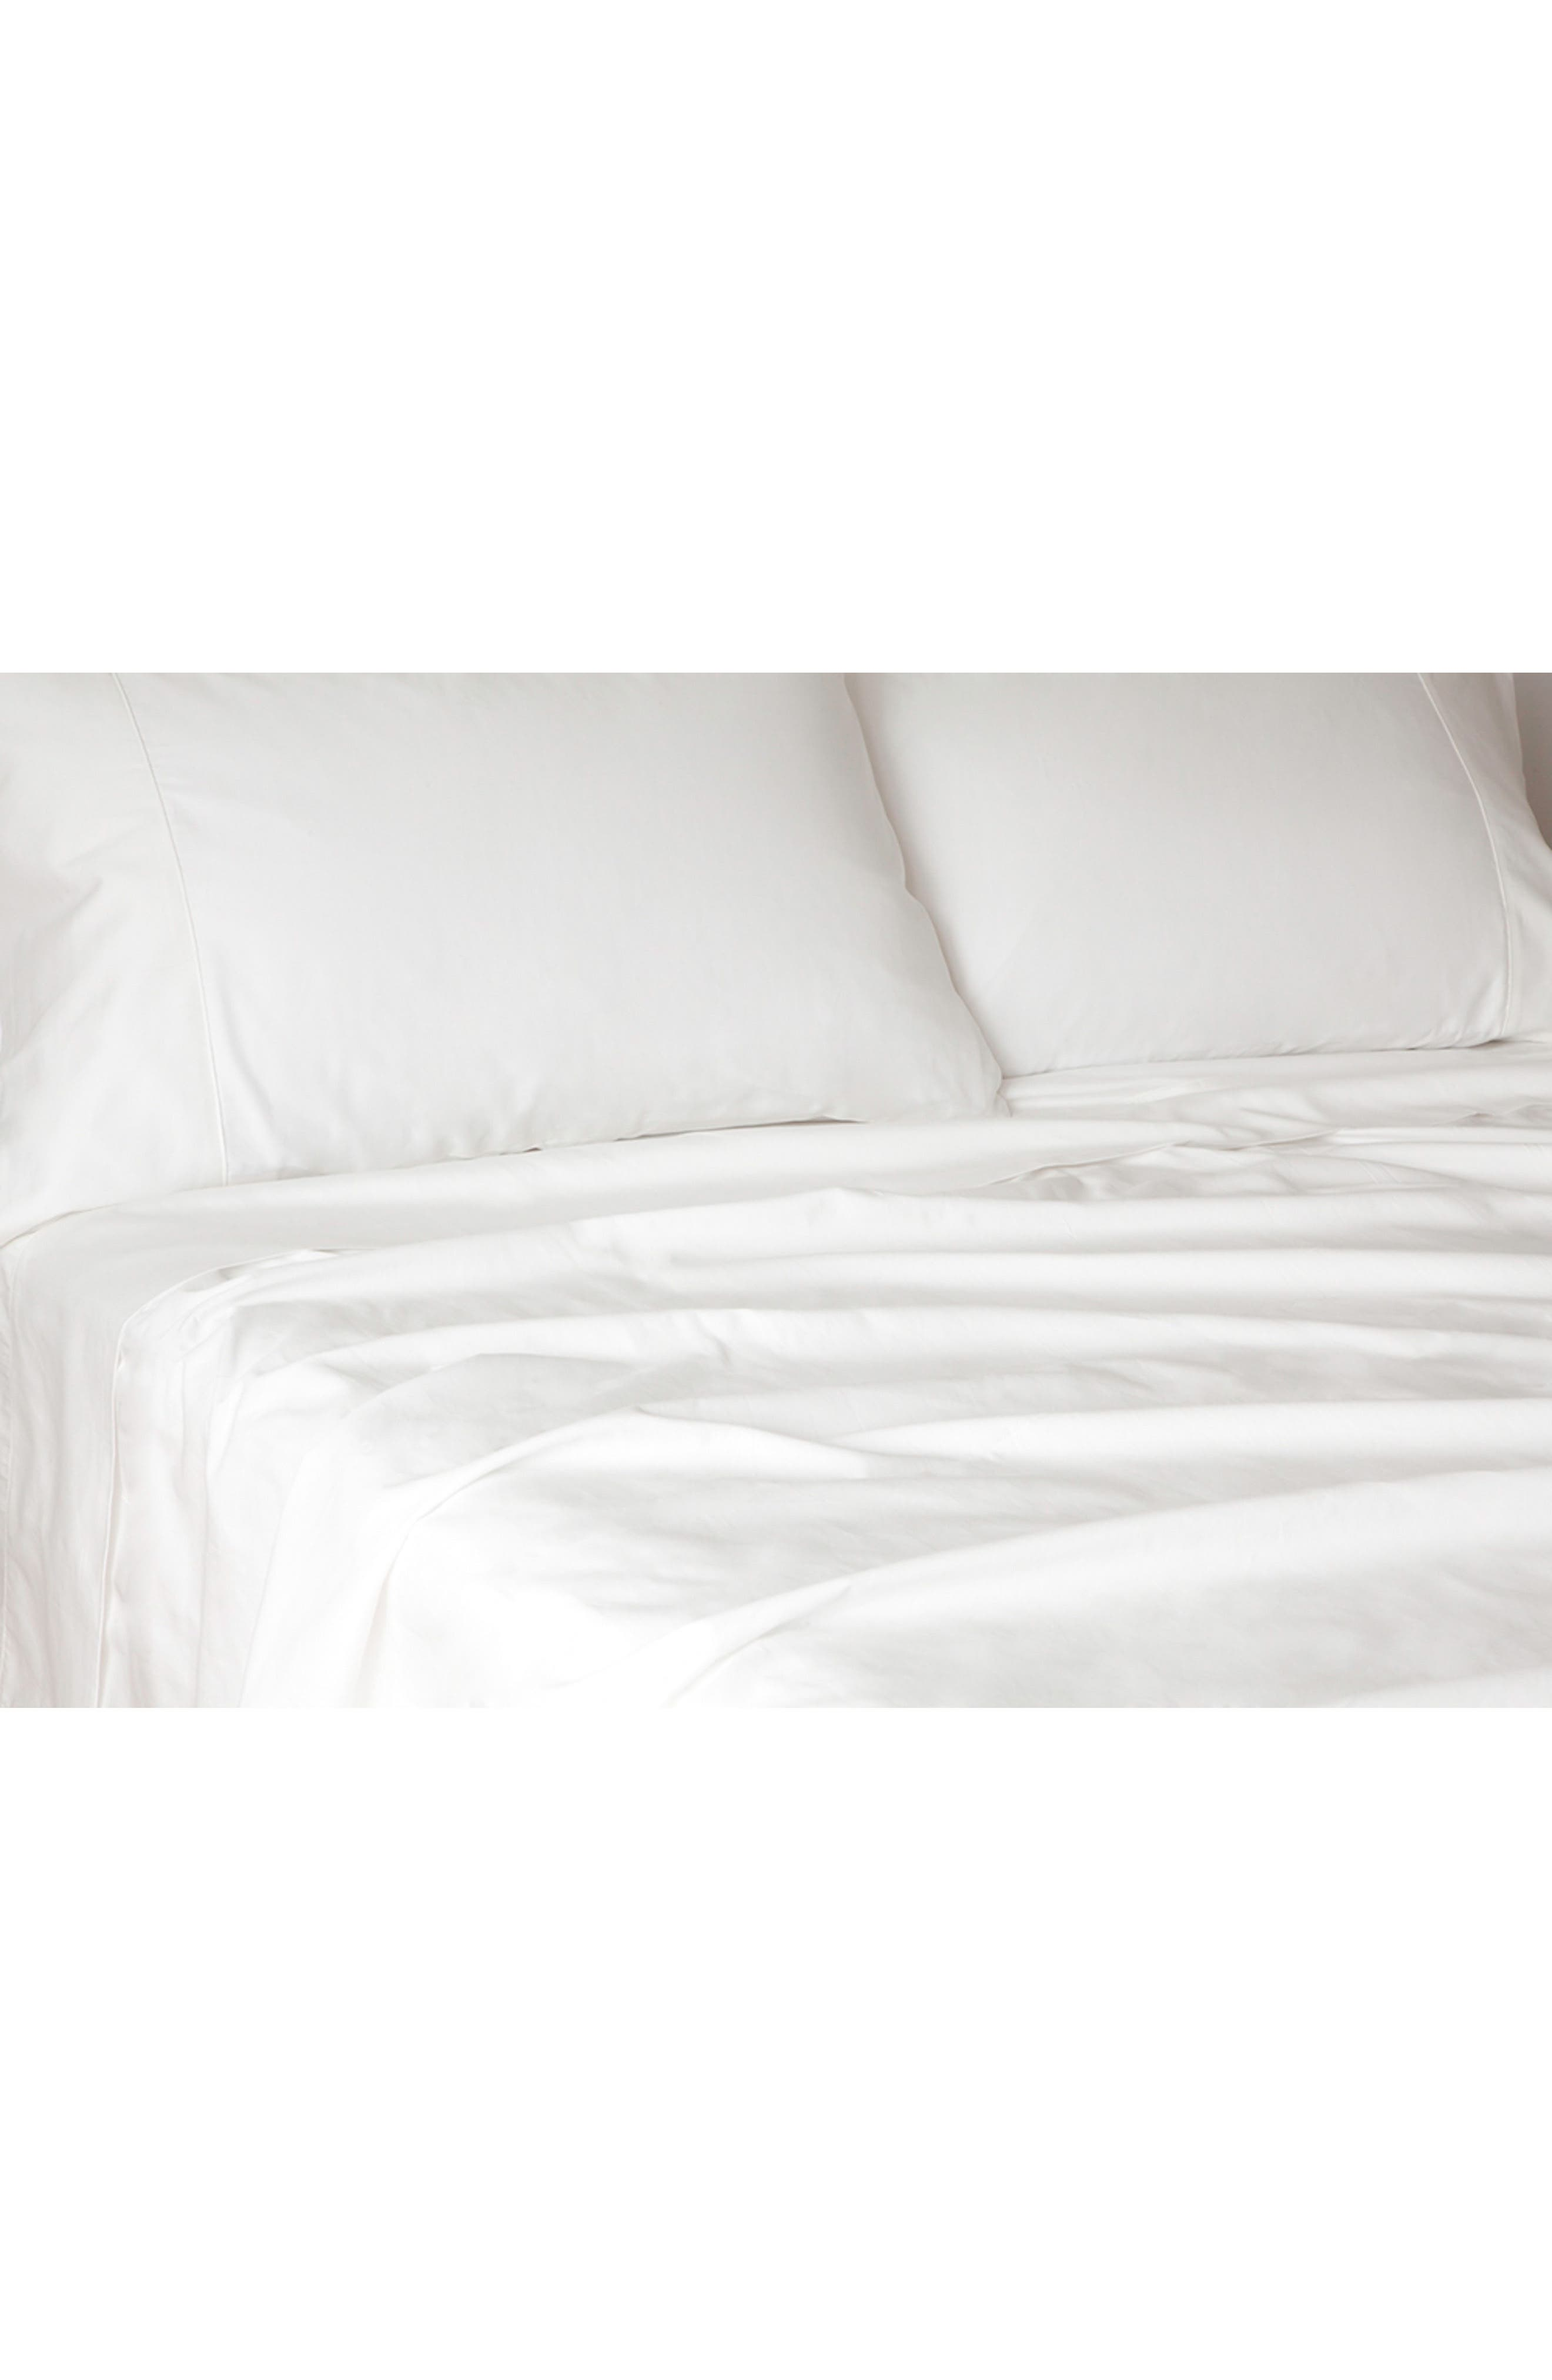 300 Thread Count Organic Cotton Sateen Sheet Set,                             Main thumbnail 1, color,                             White